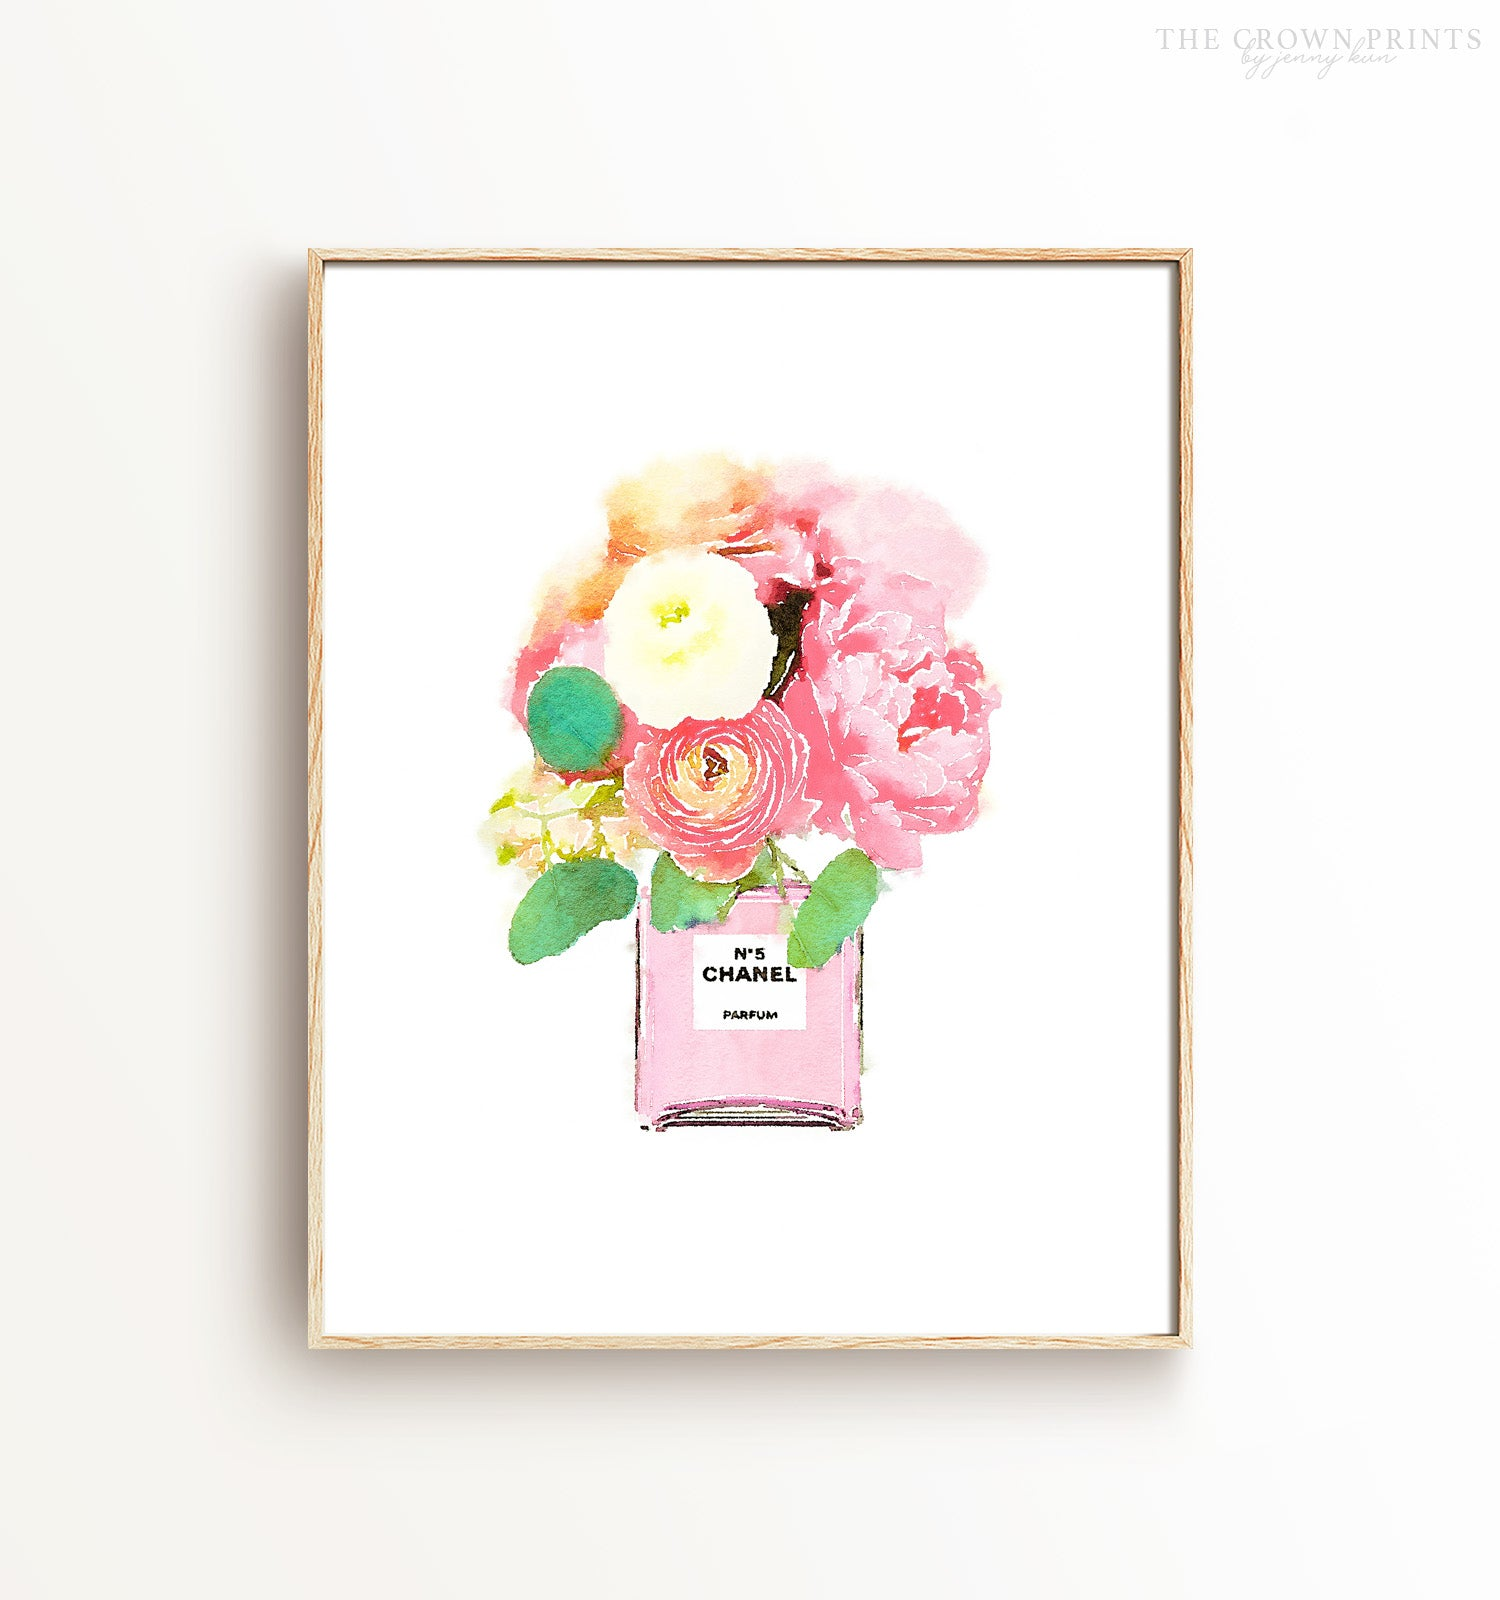 graphic about Watercolor Printable named Watercolor Chanel Floral Printable Artwork